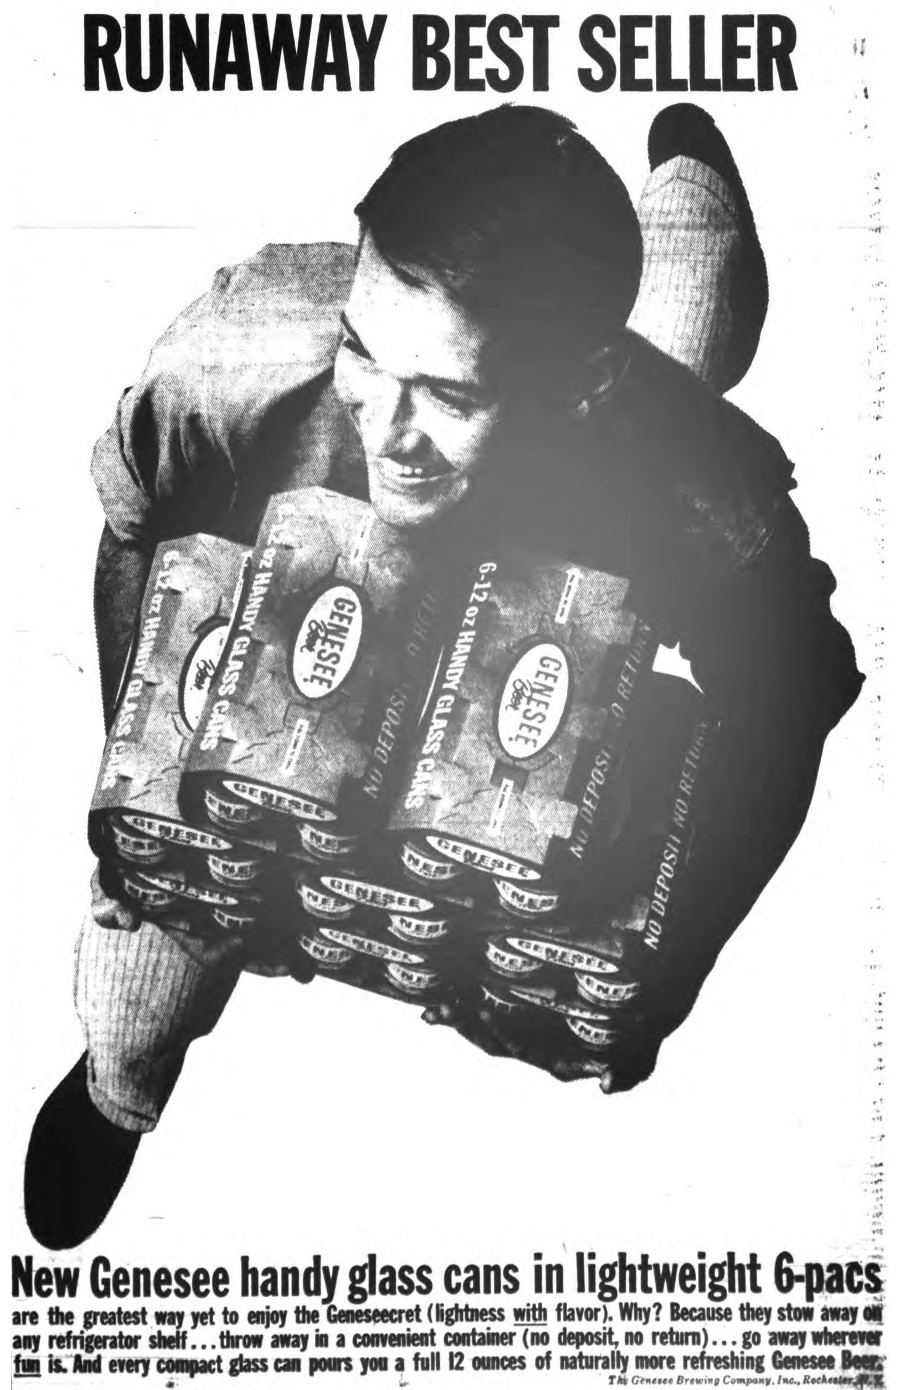 Get in on the Geneseecret [PHOTO: Genesee Ad from 1962]